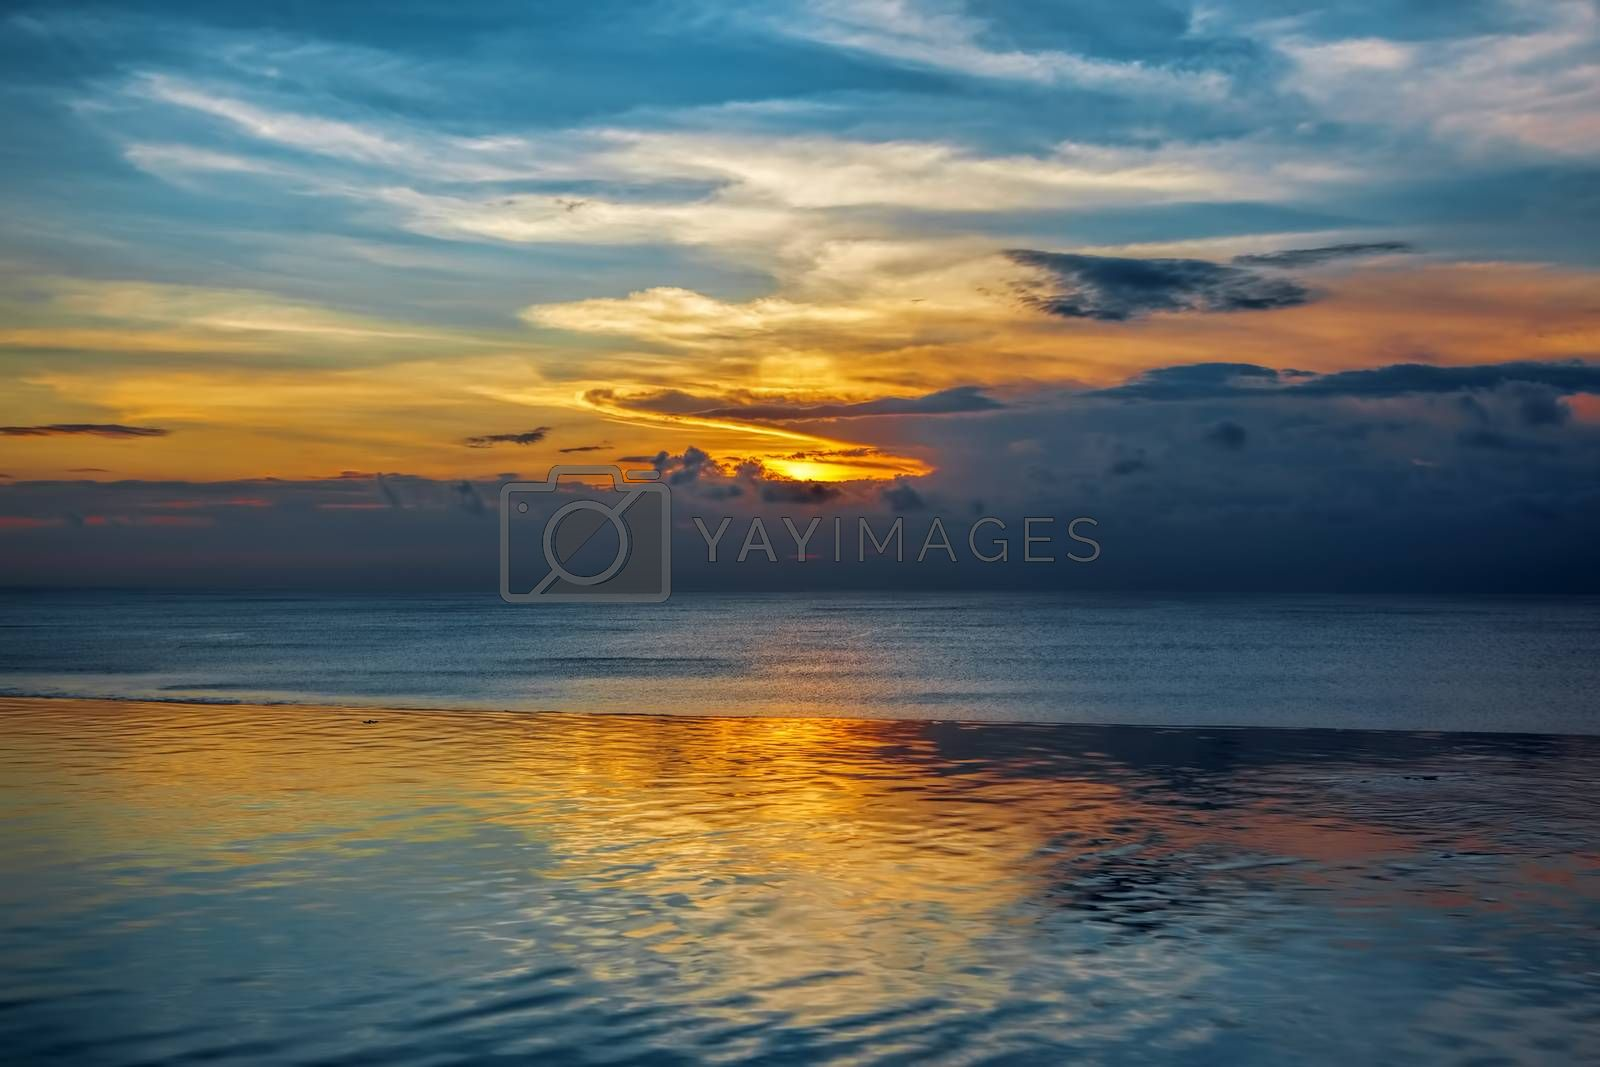 Balinese sunset with blue water and colorful skies